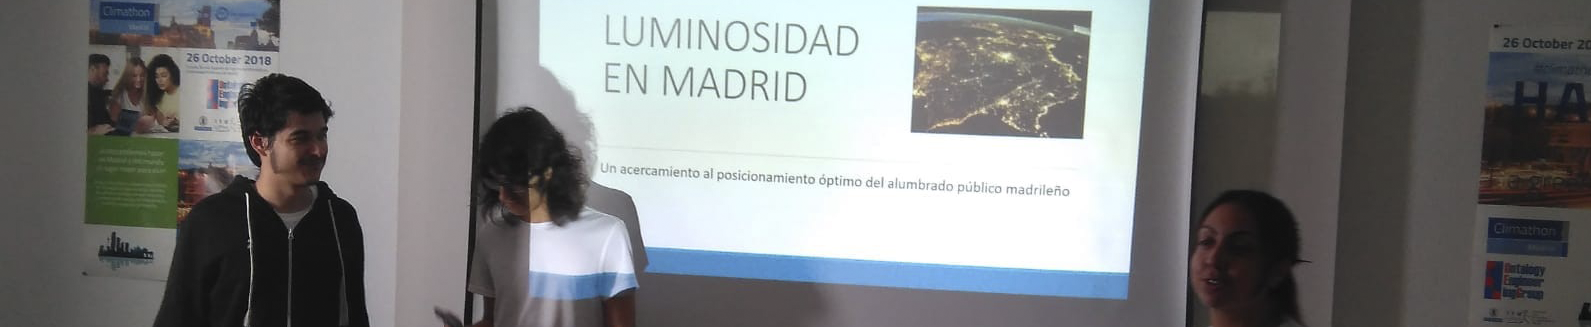 Luminosidad en Madrid